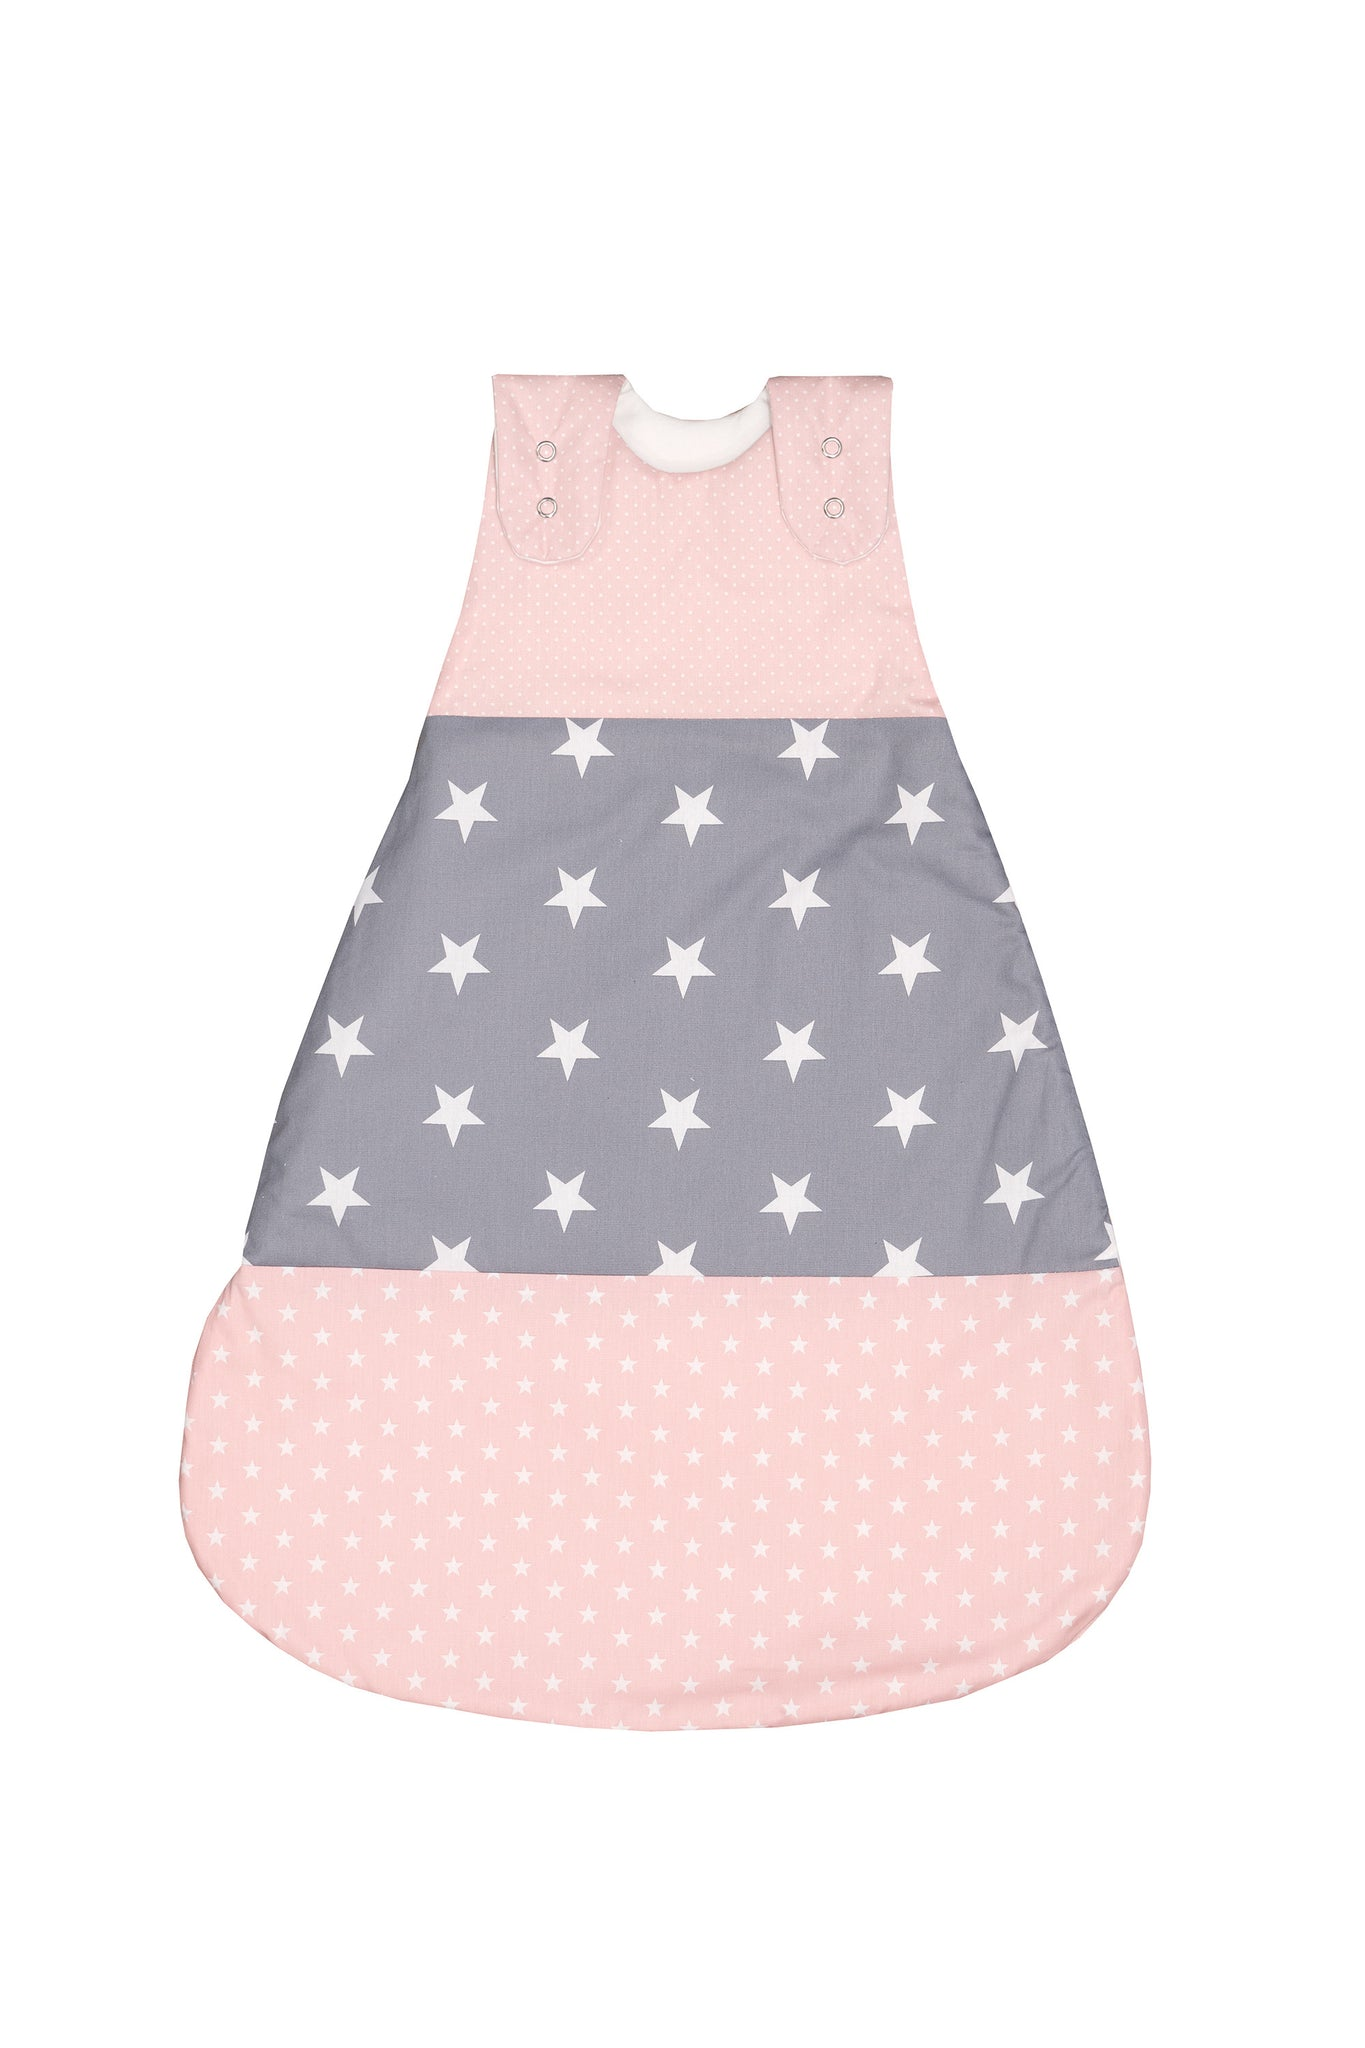 Sleep Sack – Baby Sleeping Bag, Wearable Blanket, Pink Grey with Stars, 0-6 Months